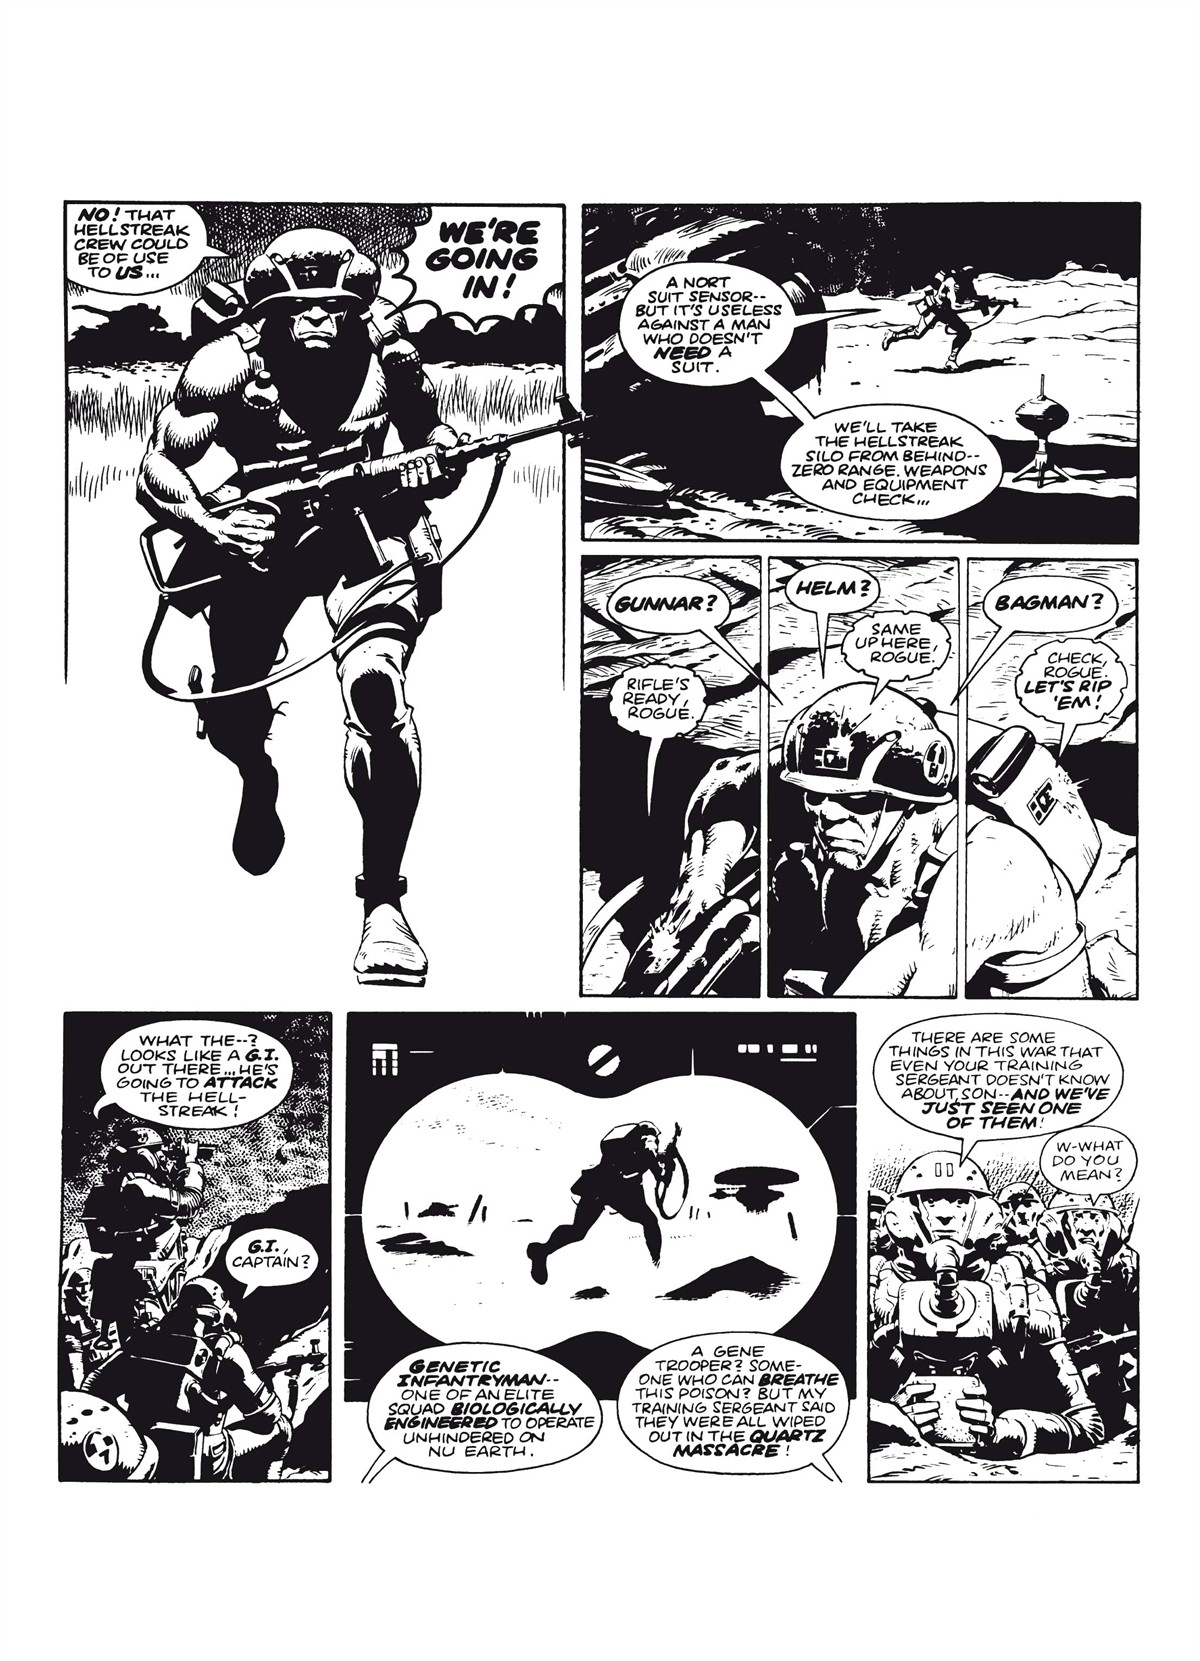 Rogue trooper tales of nu earth 1 9781907992704.in04